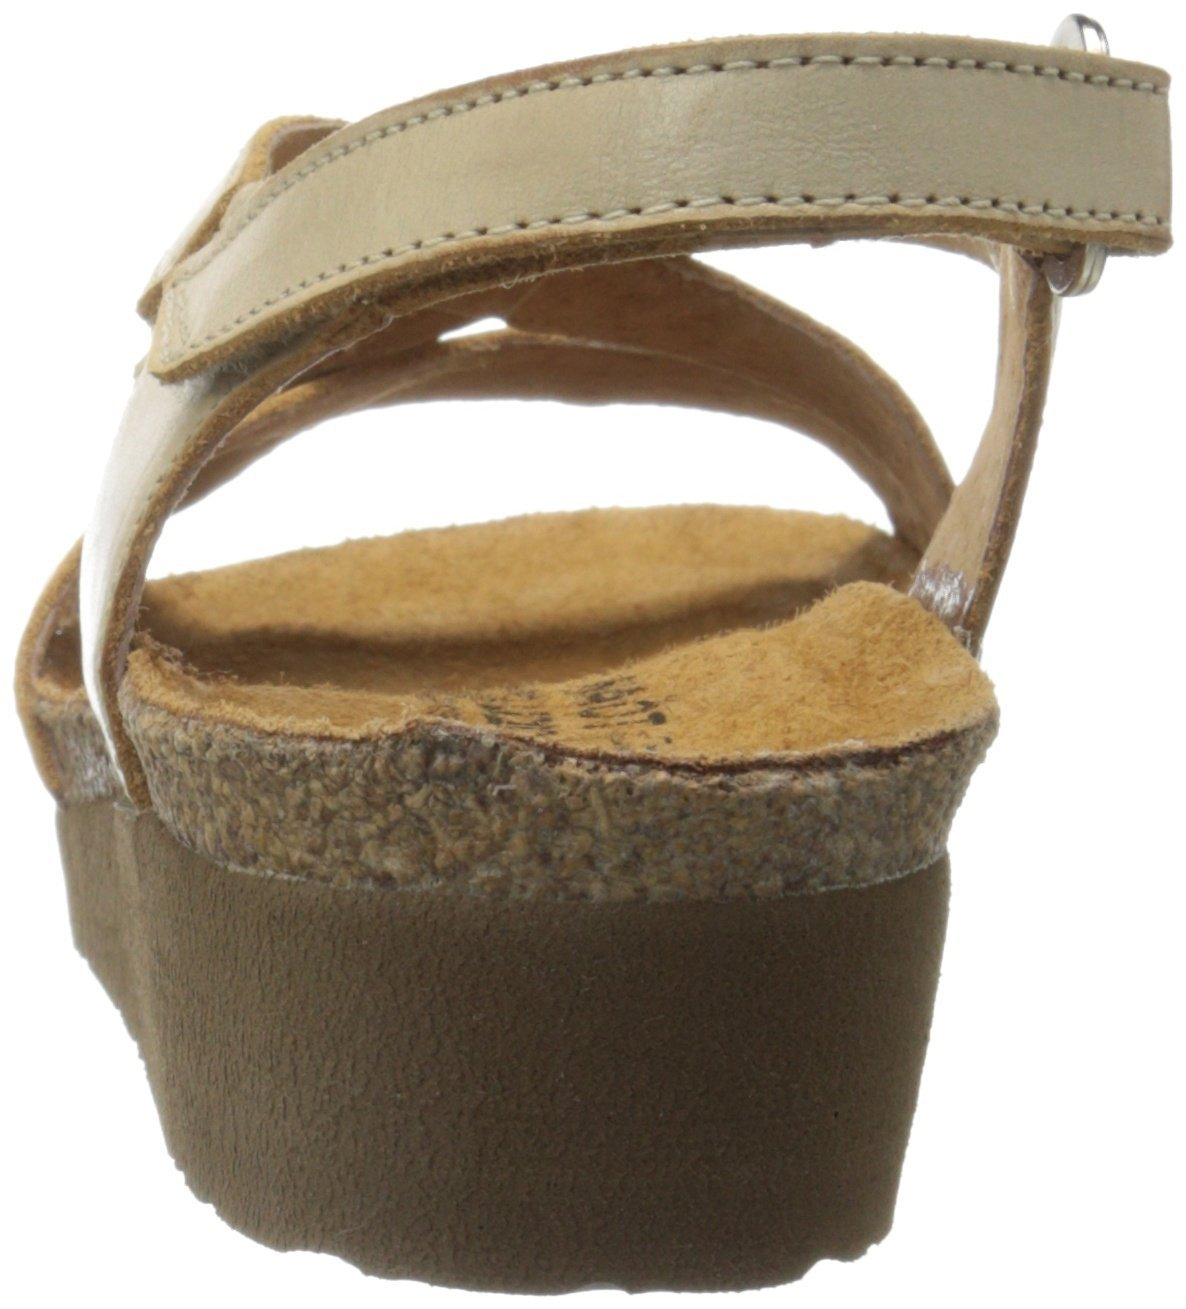 Naot Women's Bernice Wedge Sandal, Biscuit Leather, 35 EU/4.5-5 M US by NAOT (Image #2)